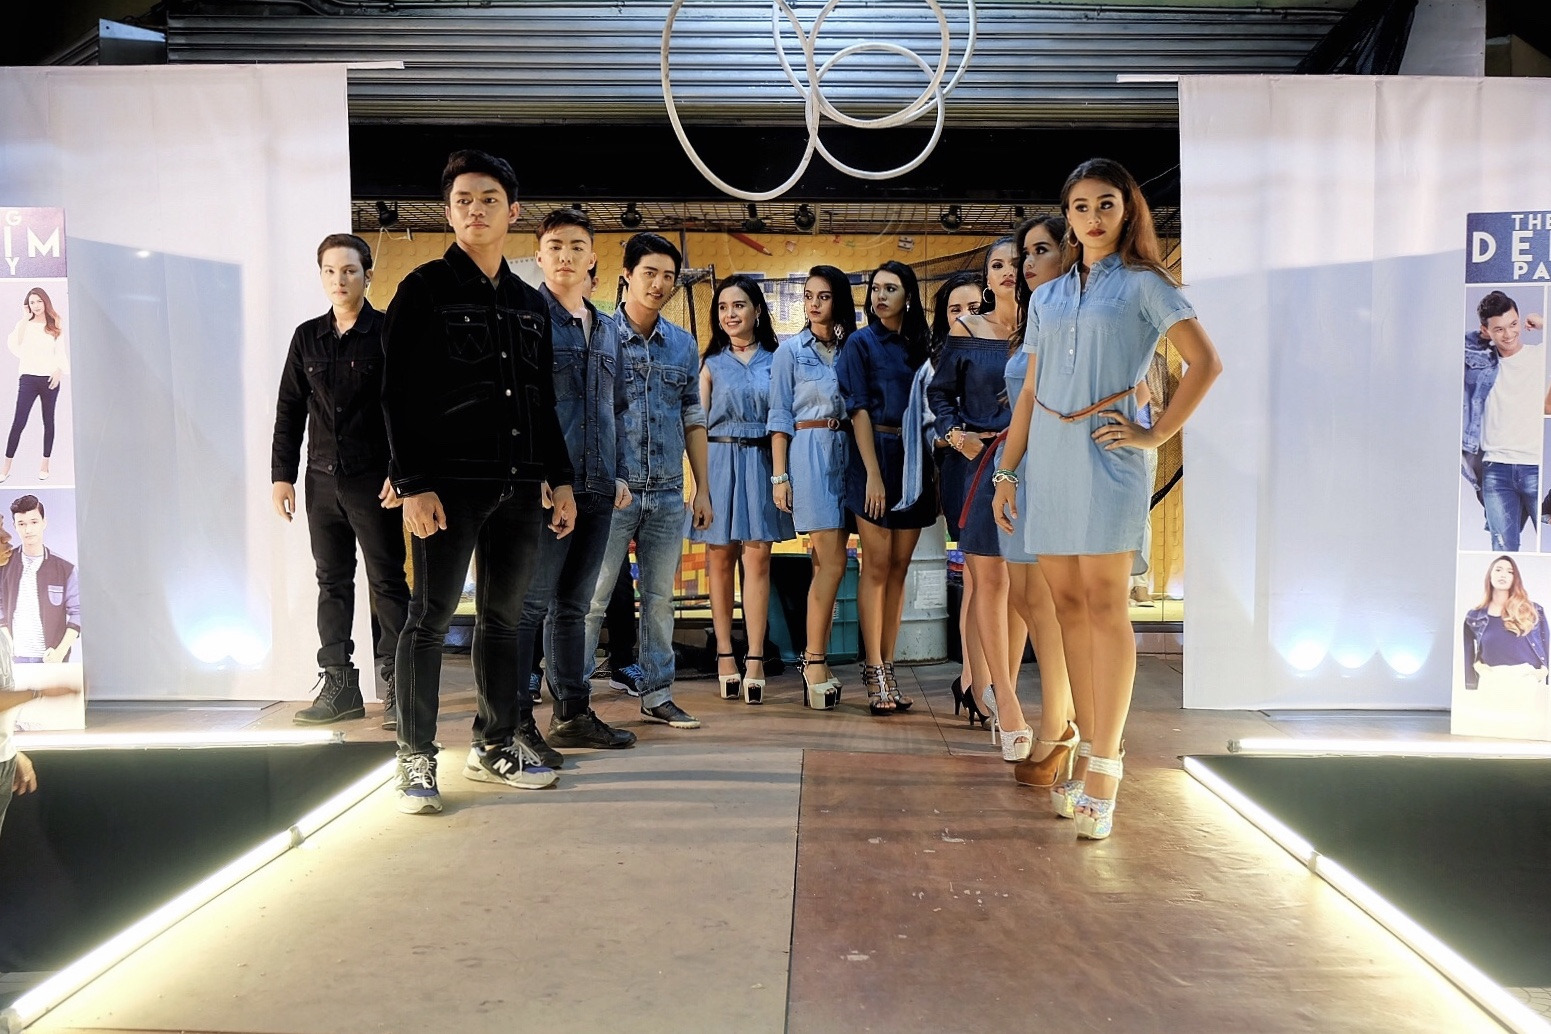 The Metro Stores Denim Party Fashion Show - iamkimcharlie03